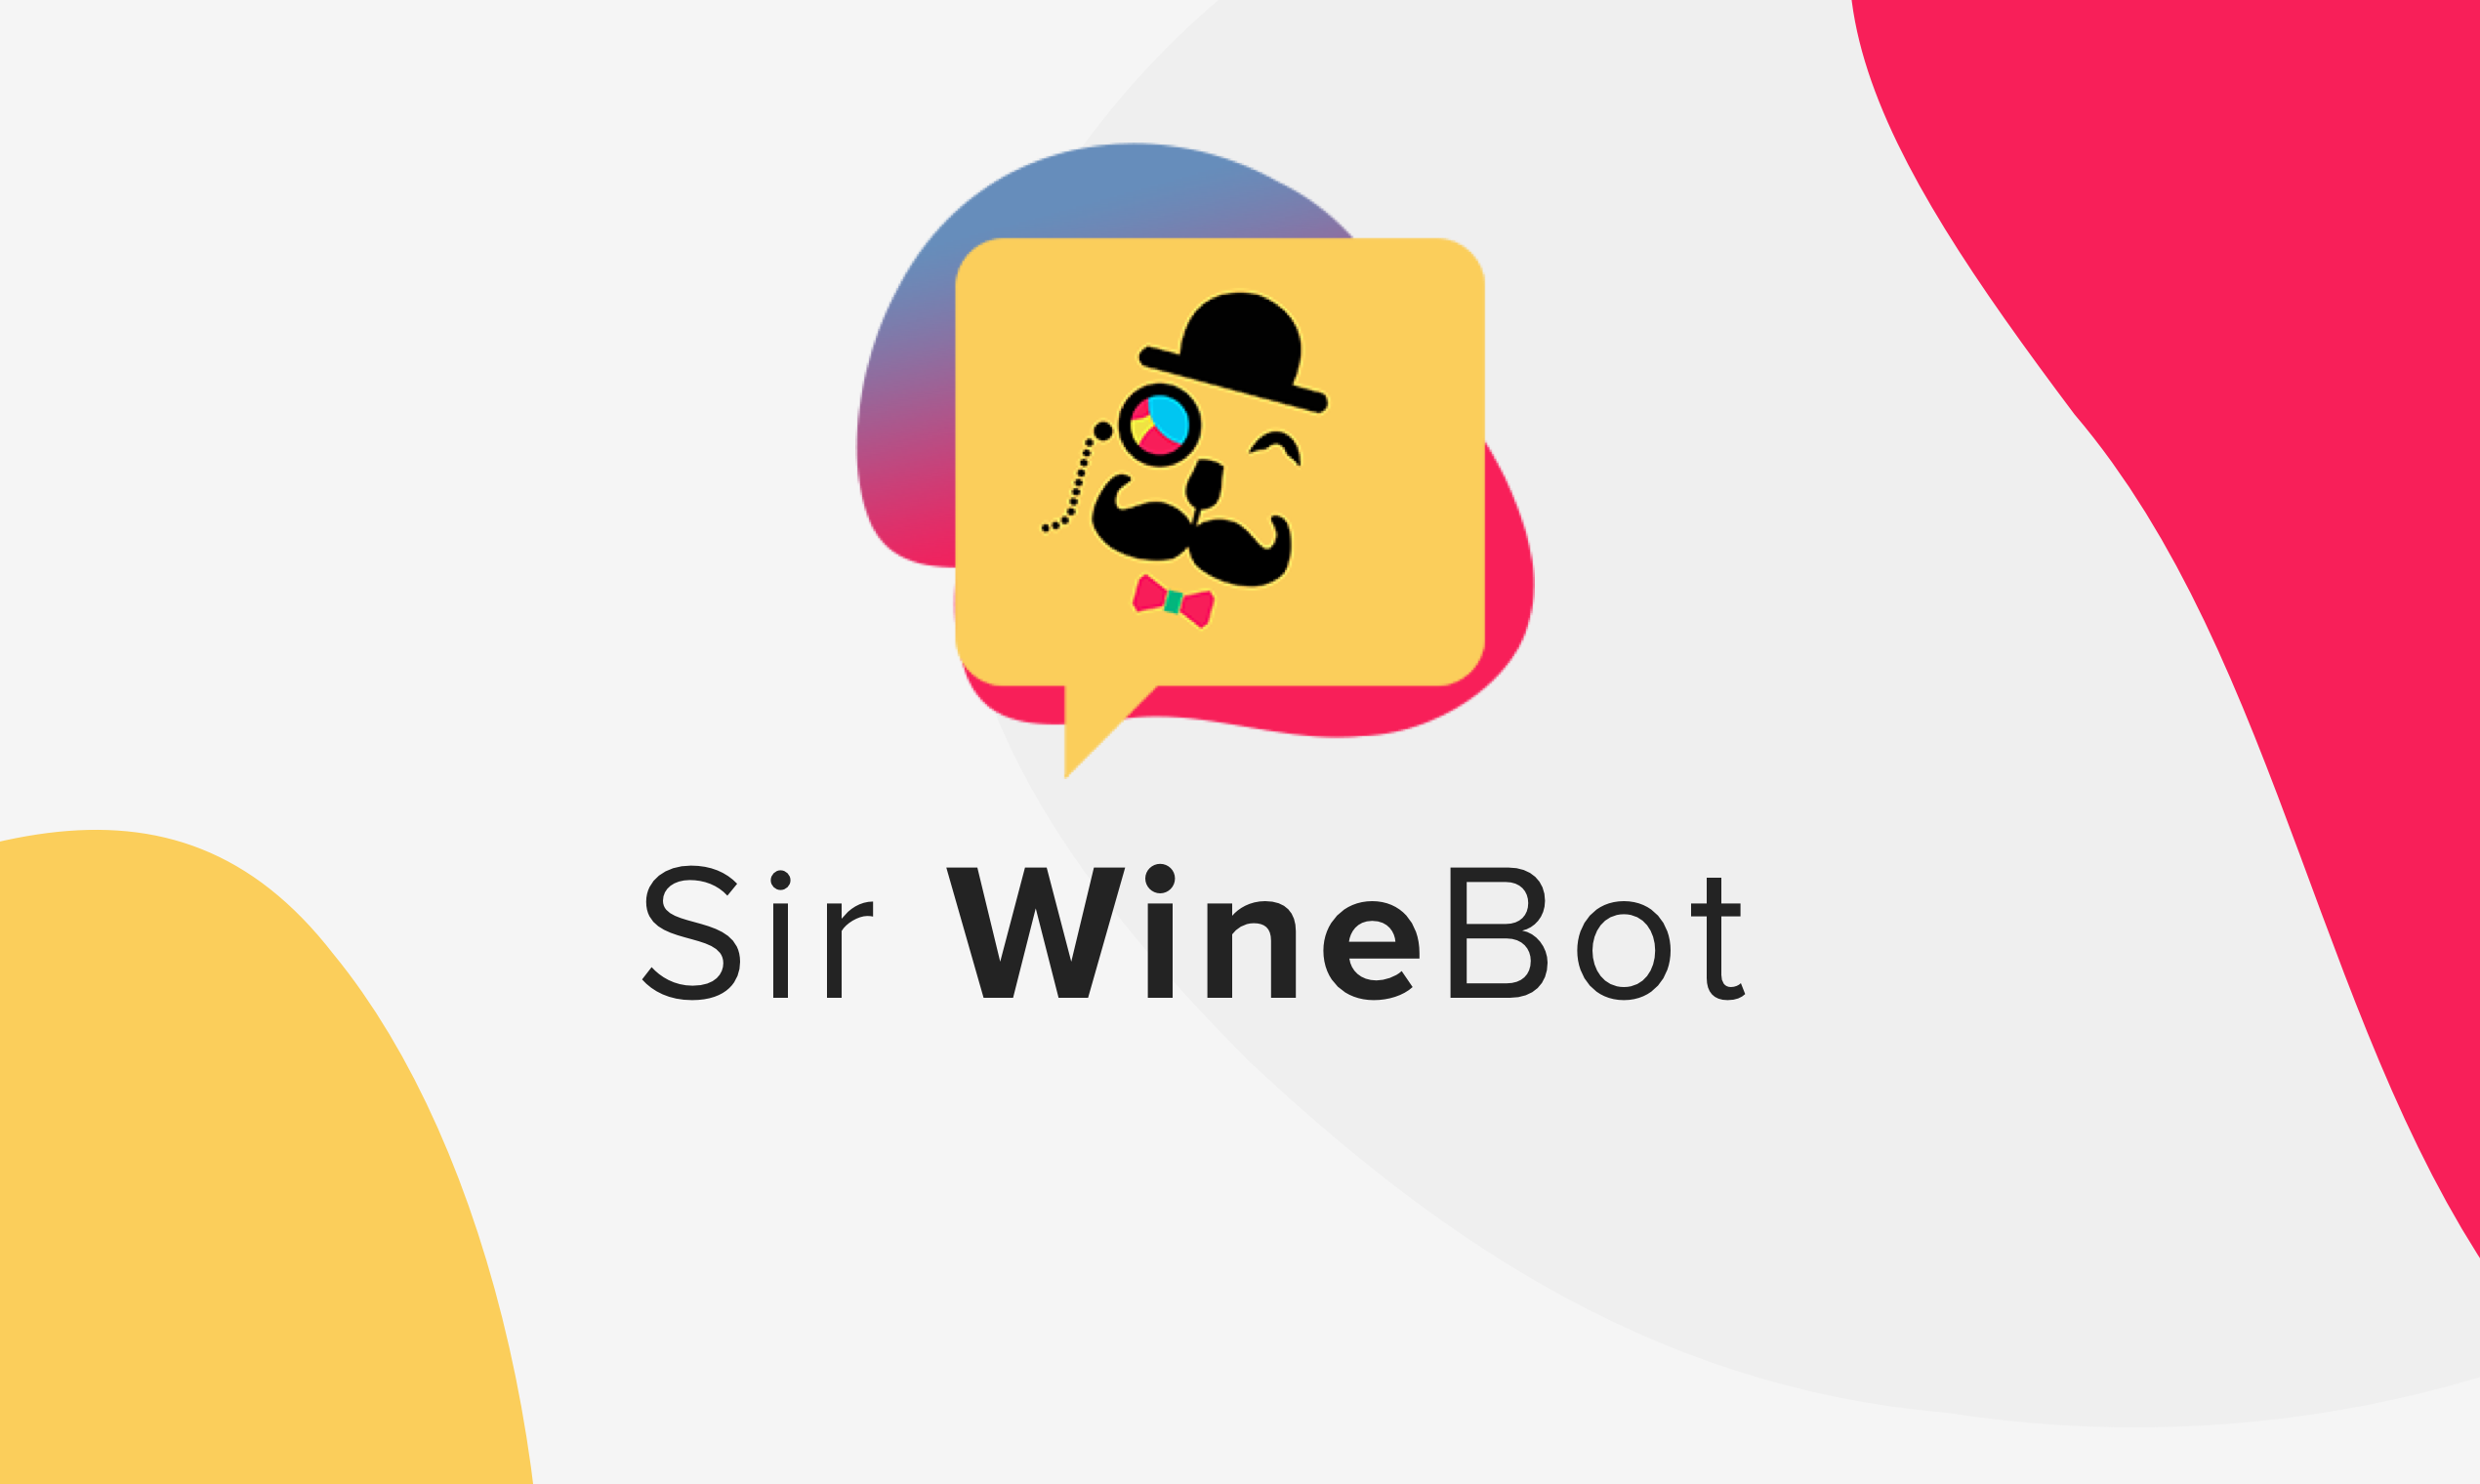 Sir WineBot Design concept by Deskree Studio